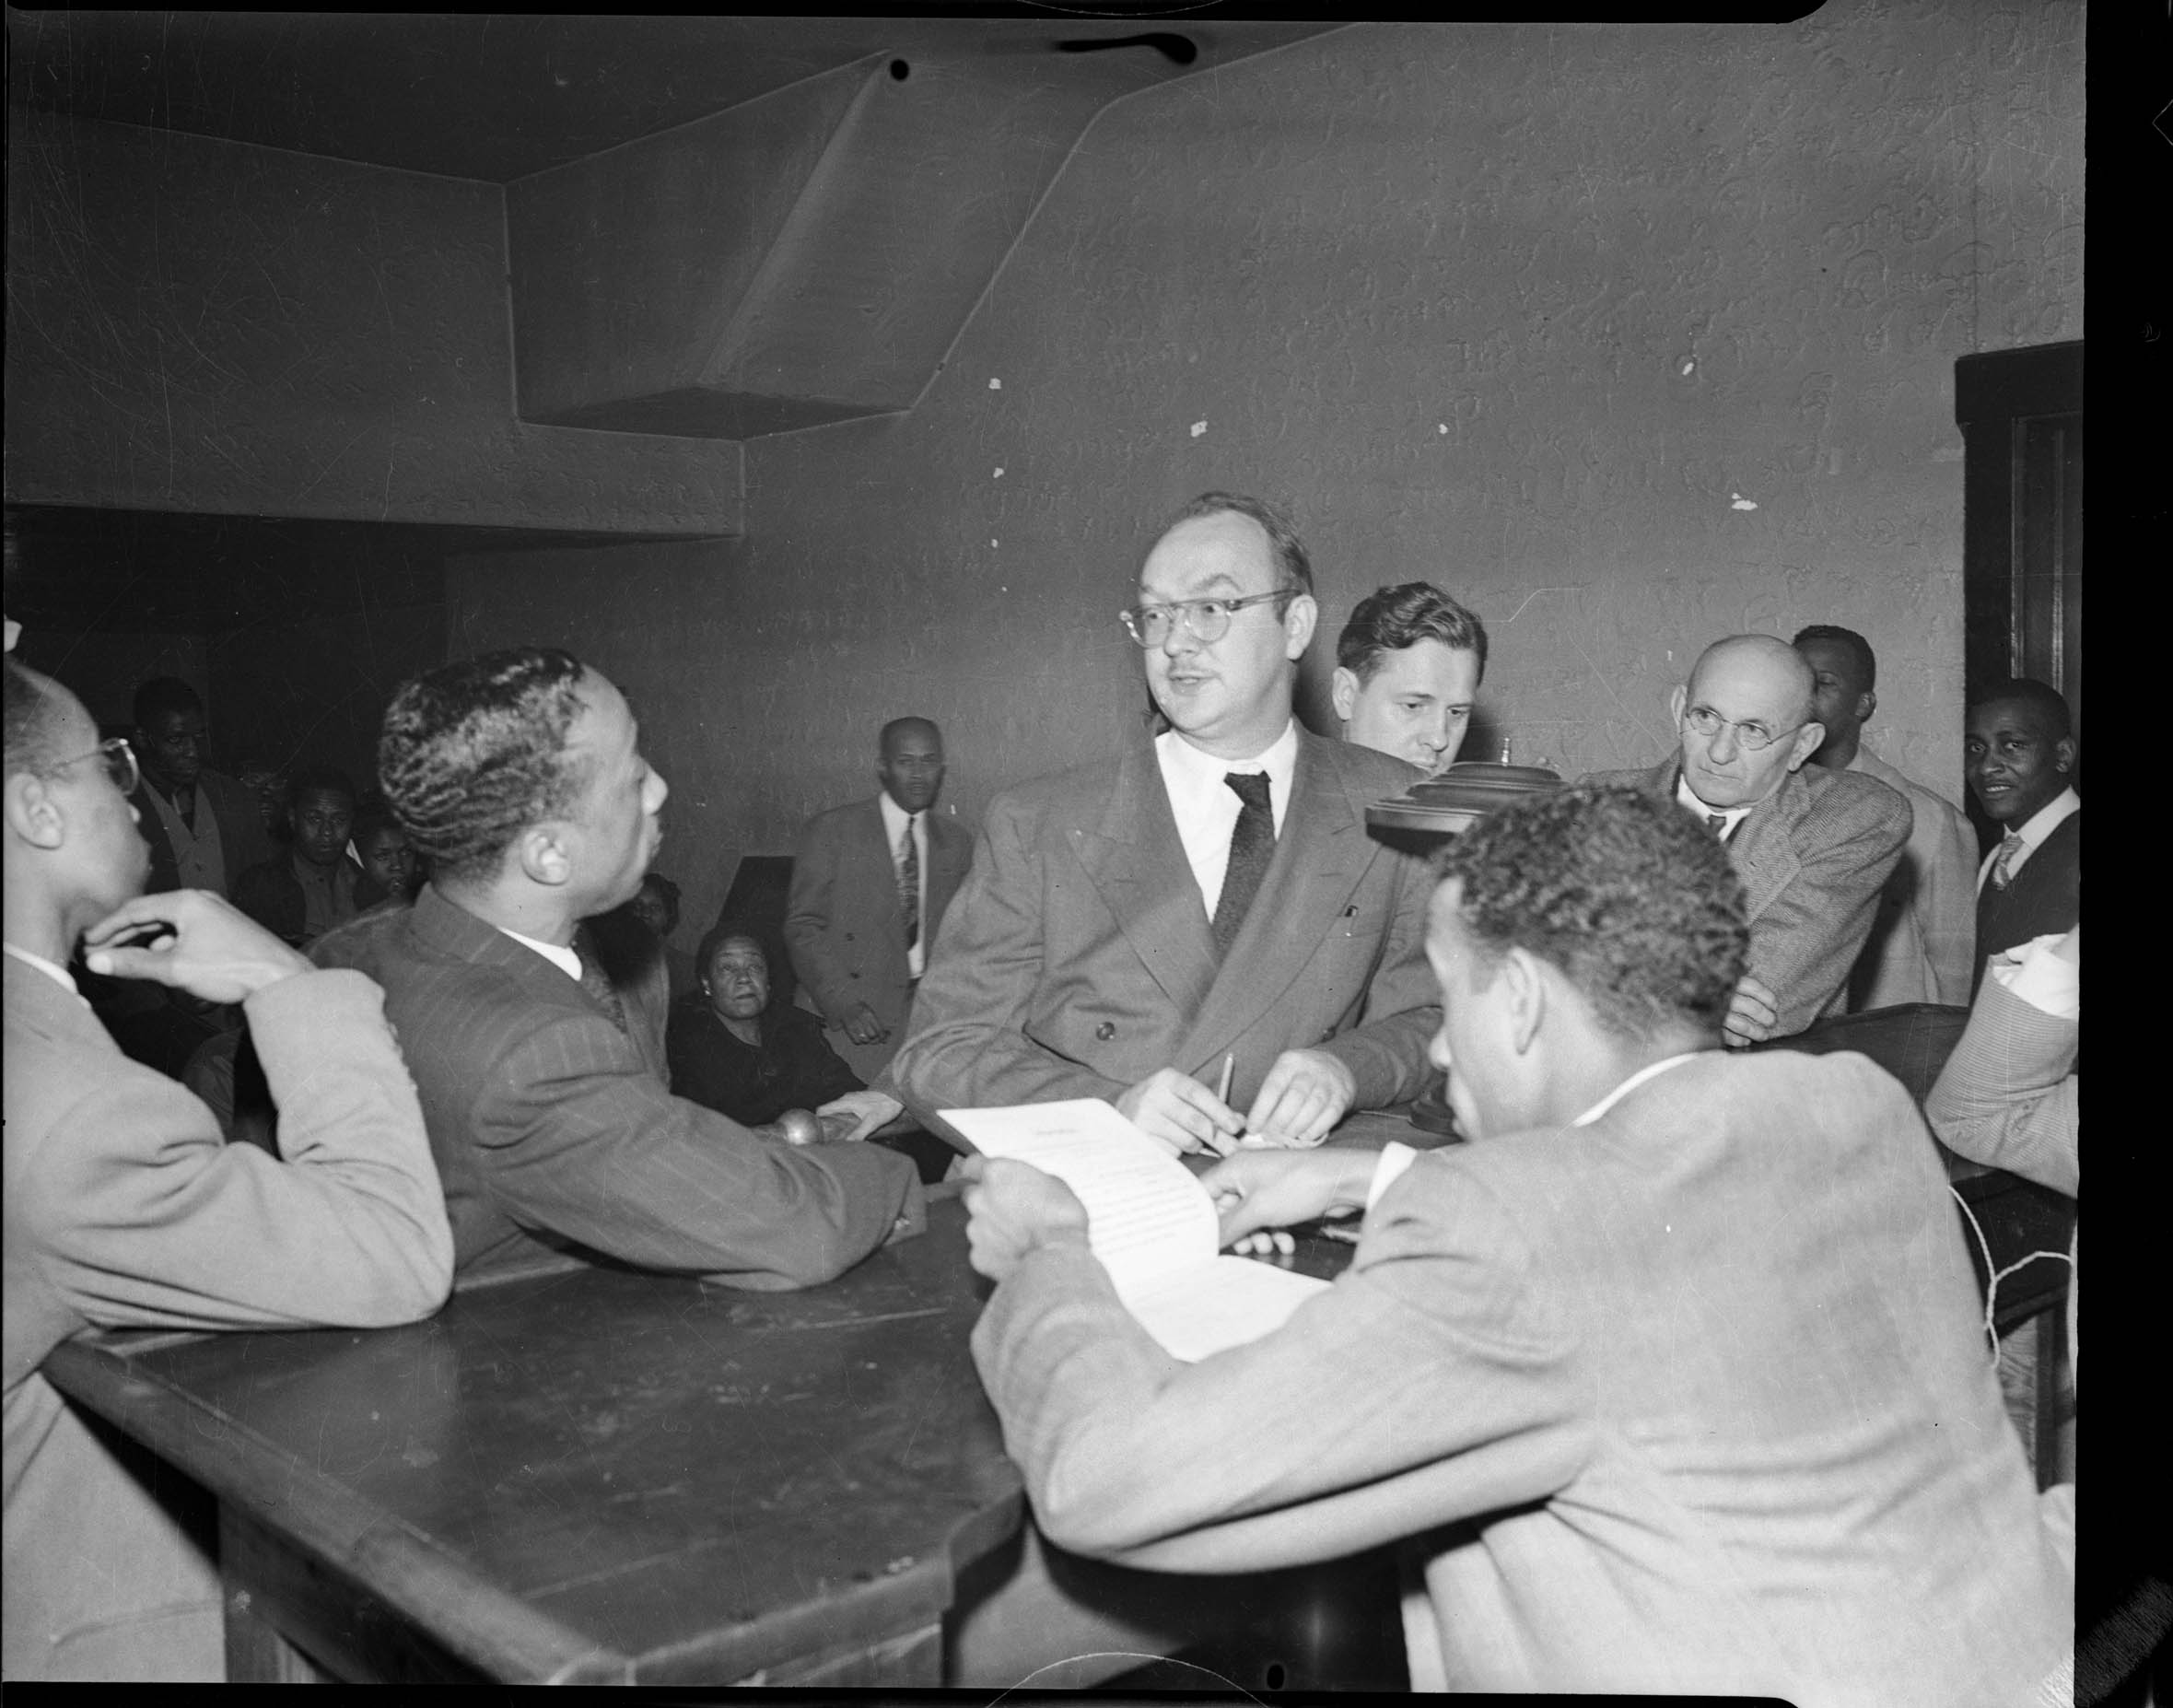 f0dcf35c Men, including one wearing eyeglasses, pinstriped suit, and patterned  necktie, standing at desk with round lamp, in Alderman Harry B.  Fitzgerald's office